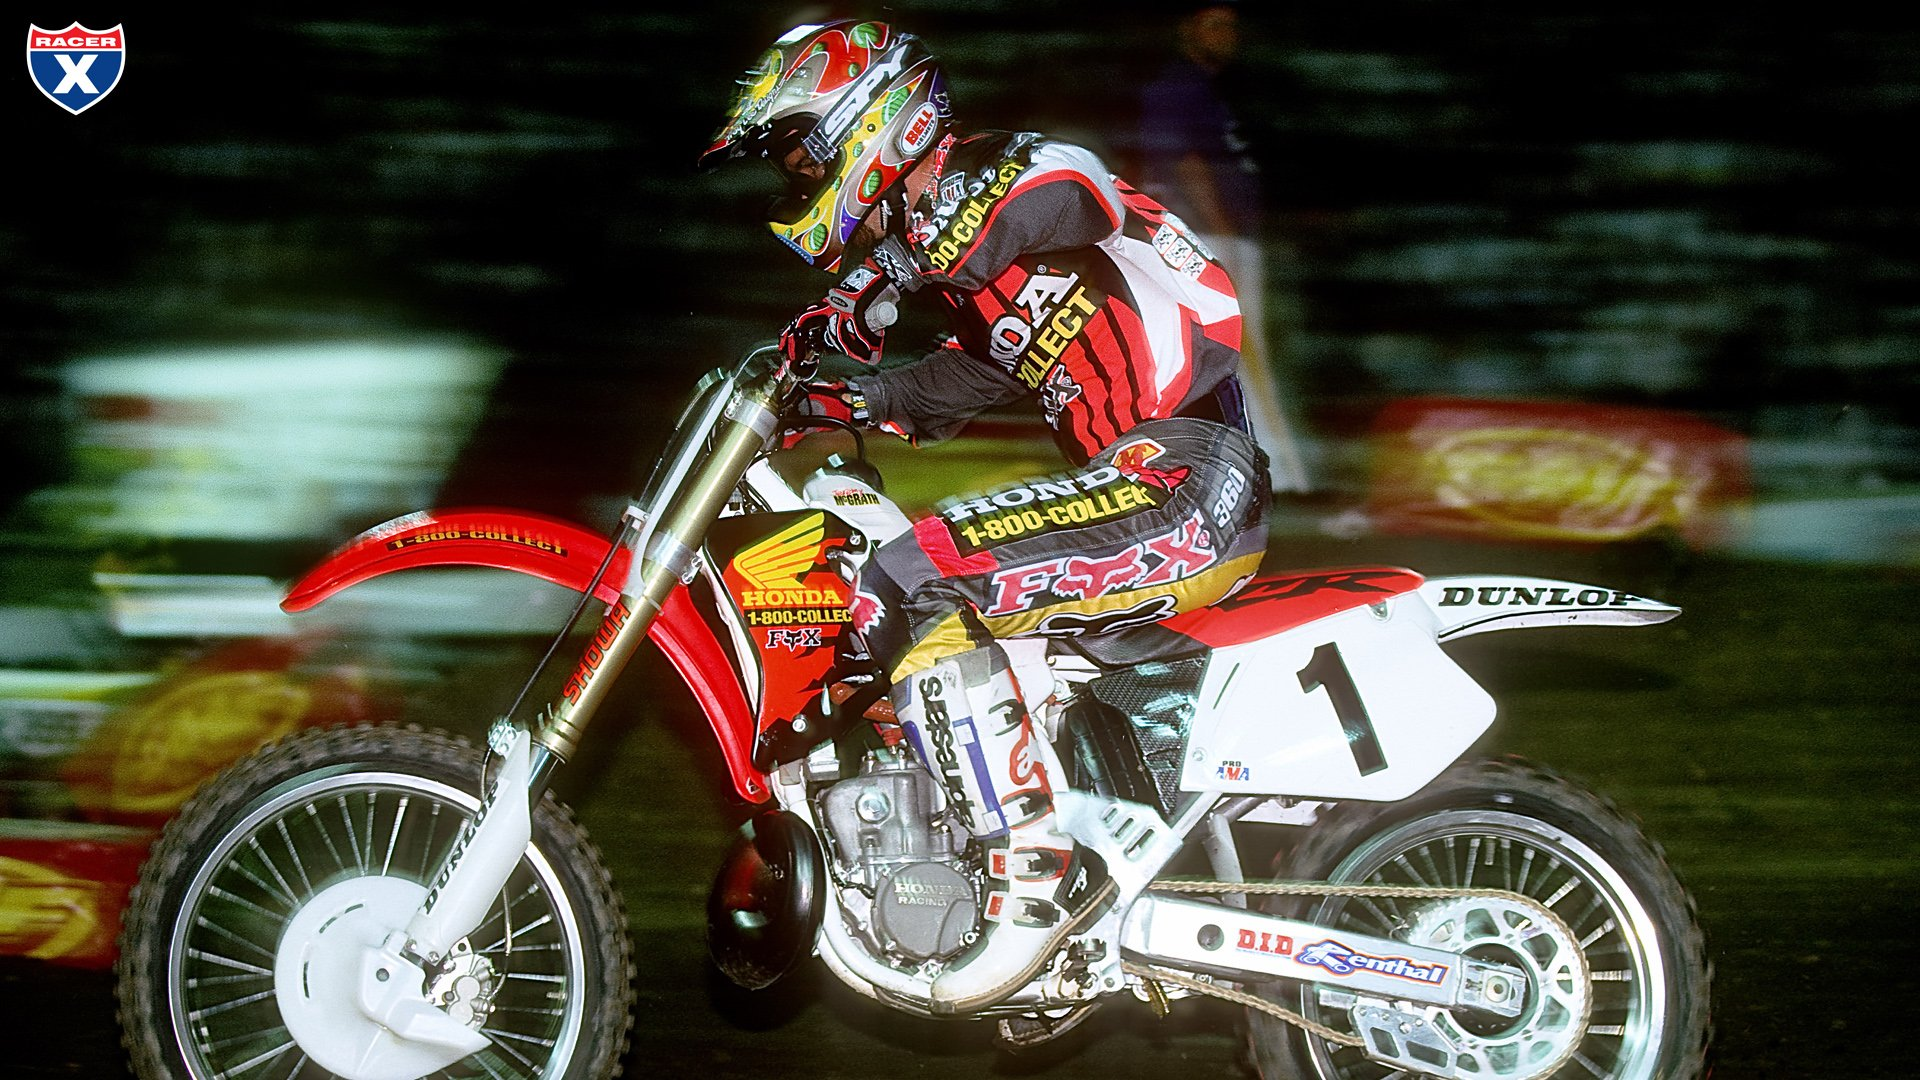 Jeremy McGrath Wallpapers - Racer X Online